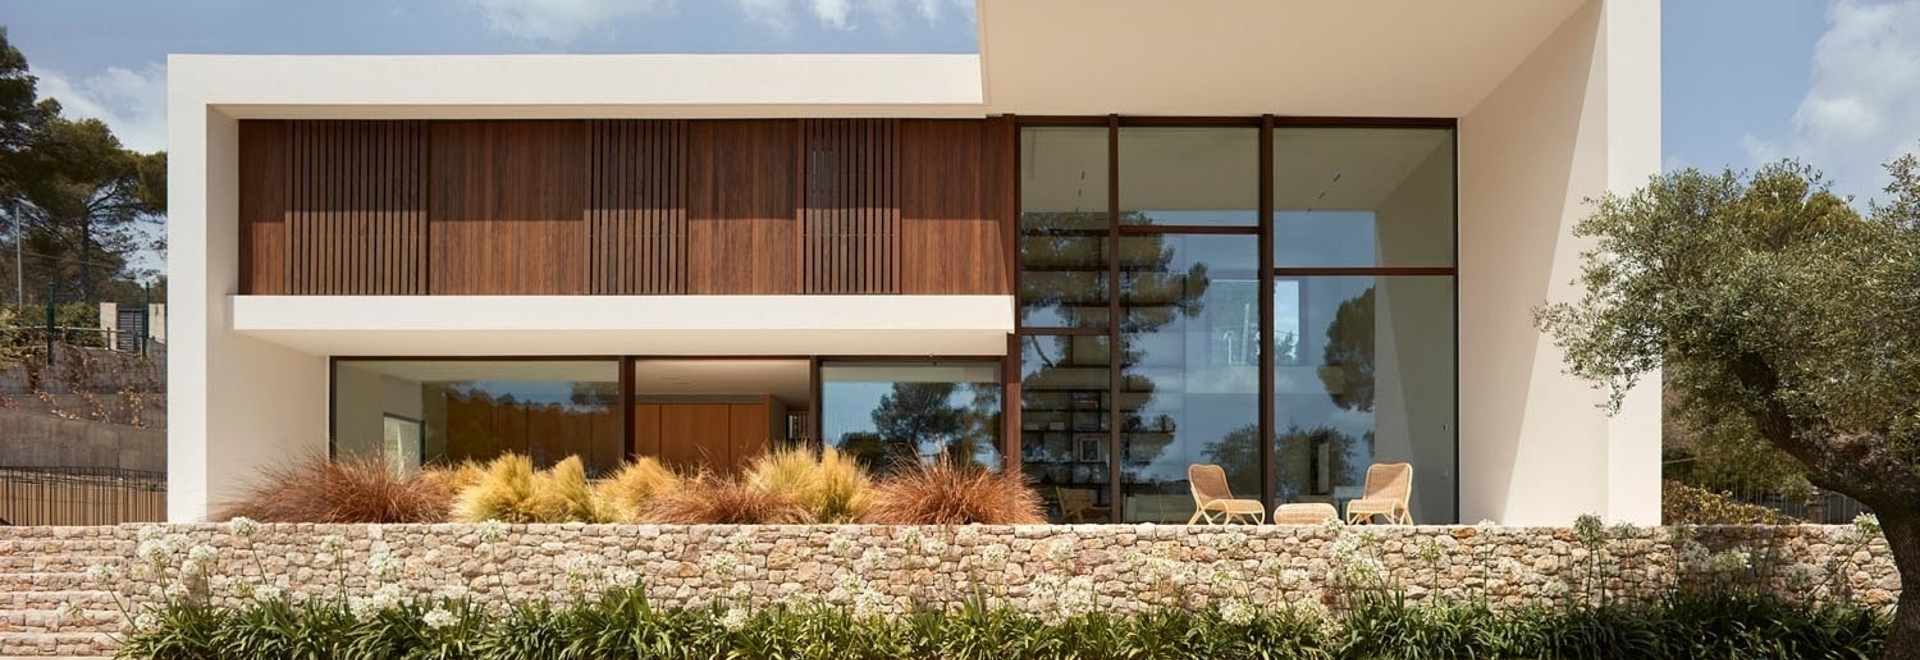 Thick Concrete Walls Give This New Home A Strong Presence